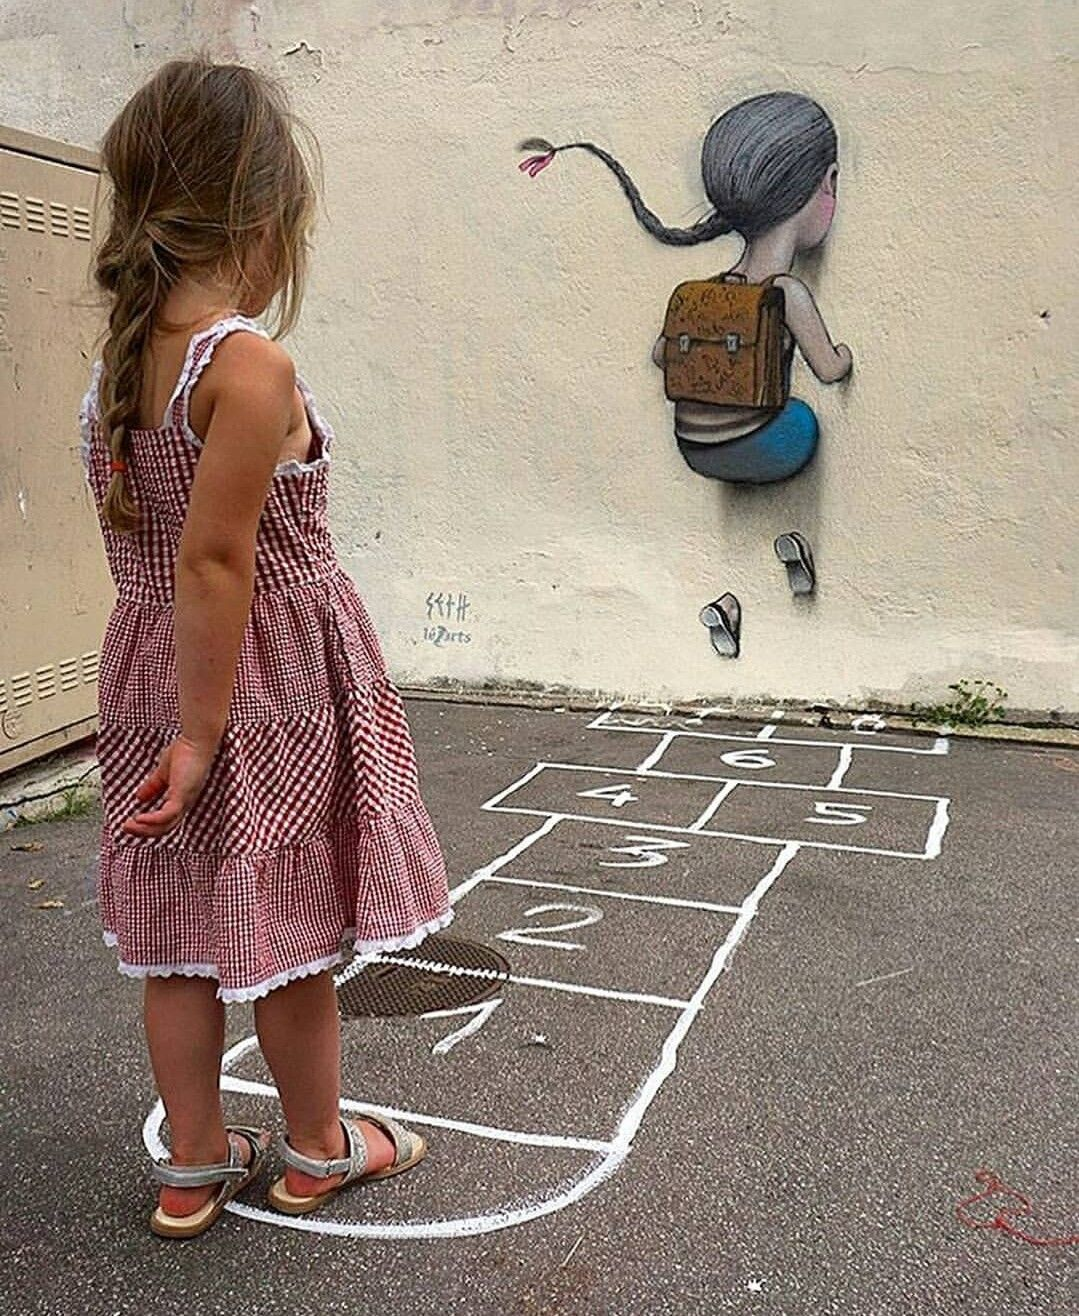 Pin by Adriano Neves on Street art (Best of) - community edition ...